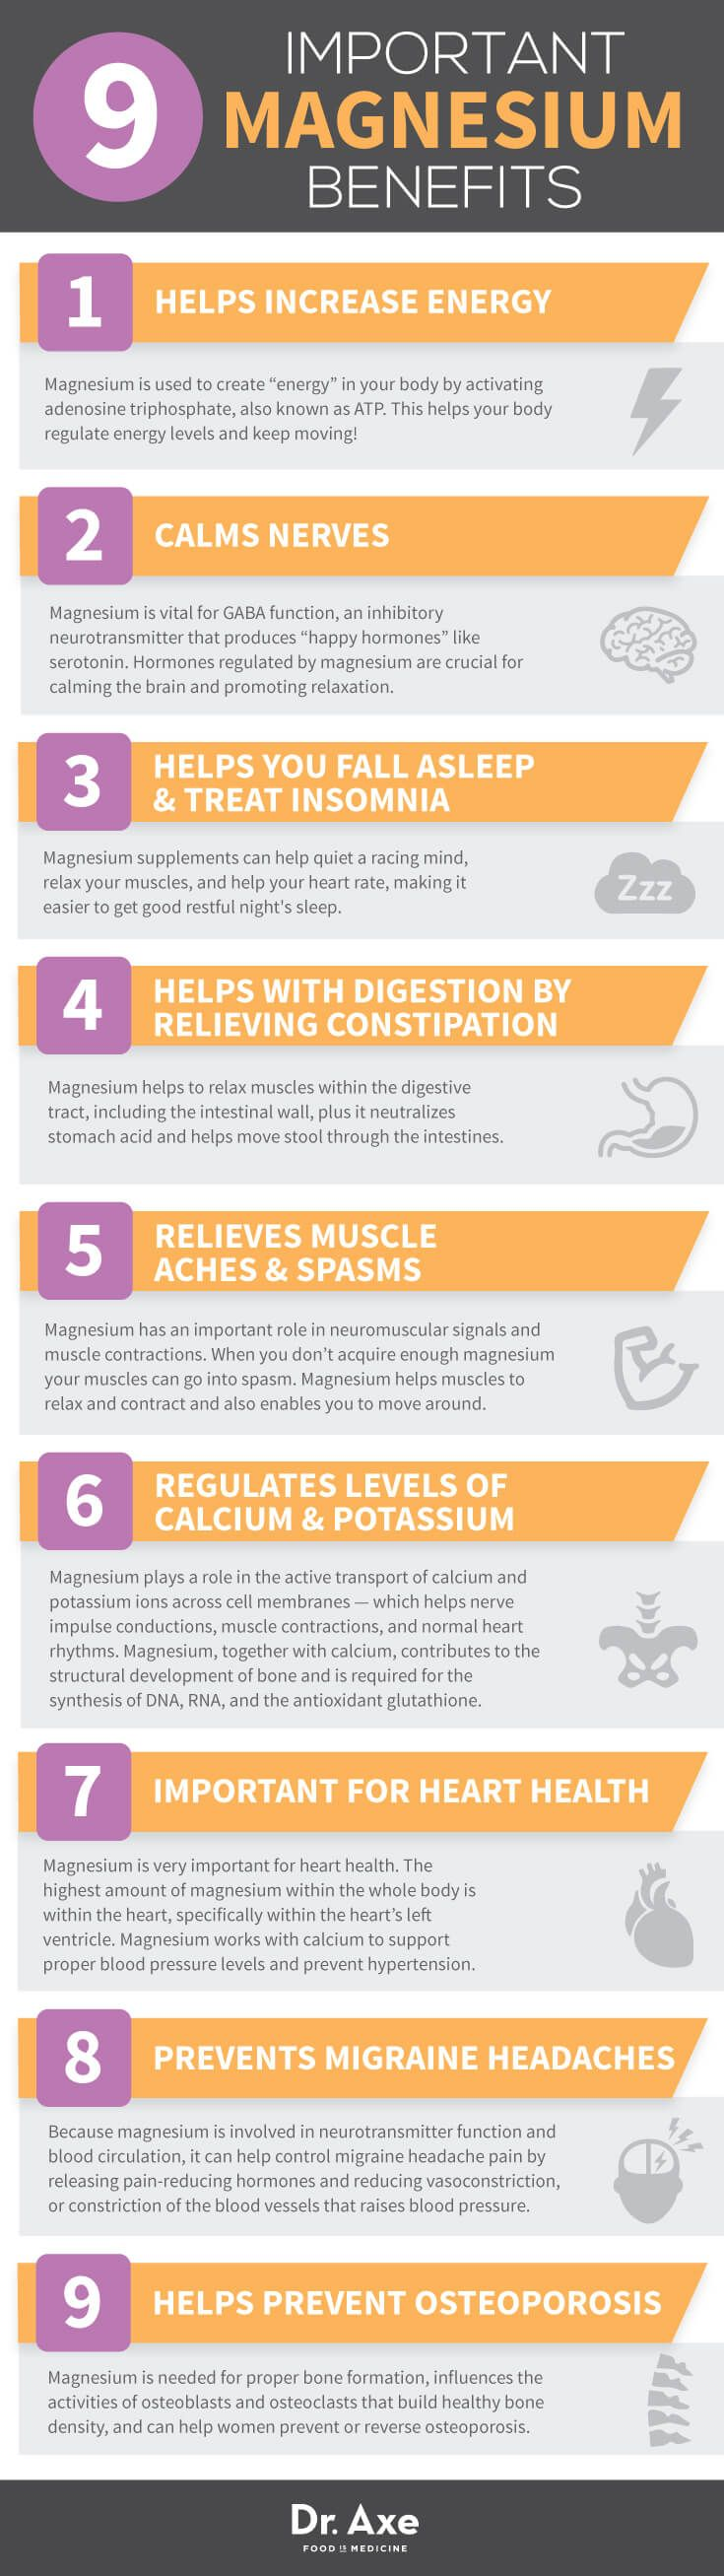 It's a good idea to consider taking magnesium supplements and eating magnesium-rich foods regularly, as magnesium deficiency is one of the.